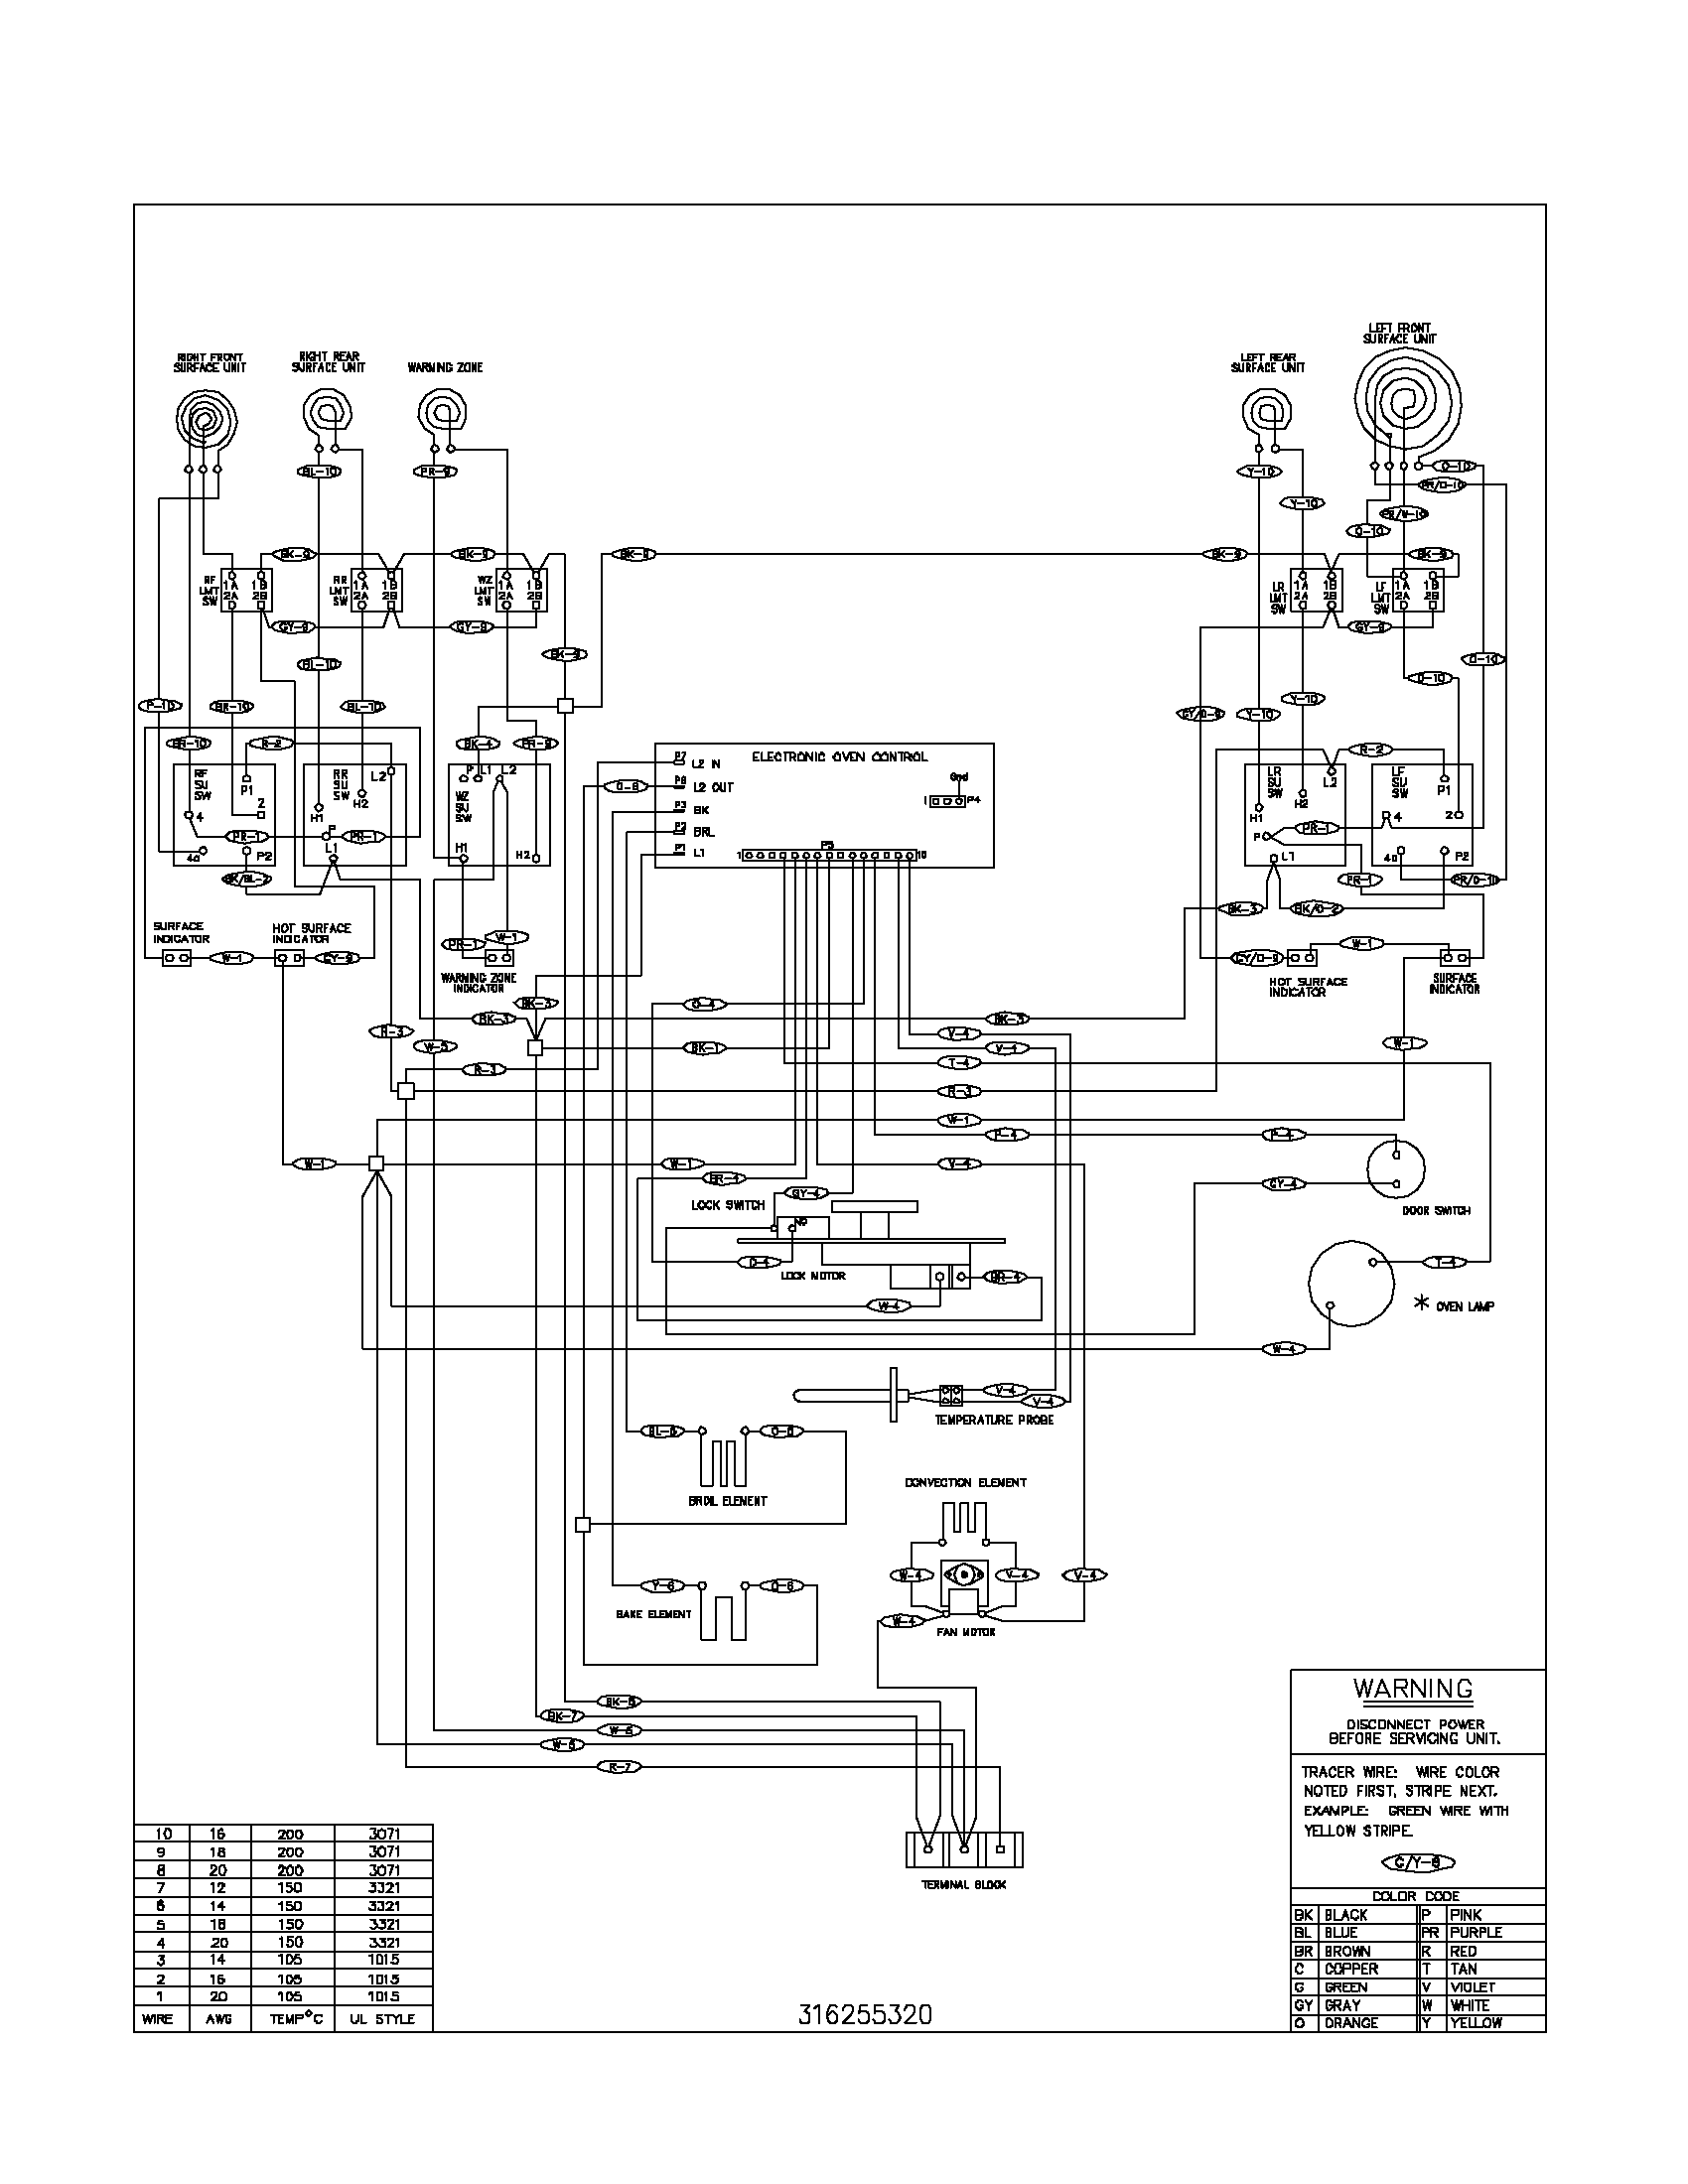 wiring diagram parts whirlpool fefl88acc electric range timer stove clocks and wiring diagram for electric fireplace at webbmarketing.co